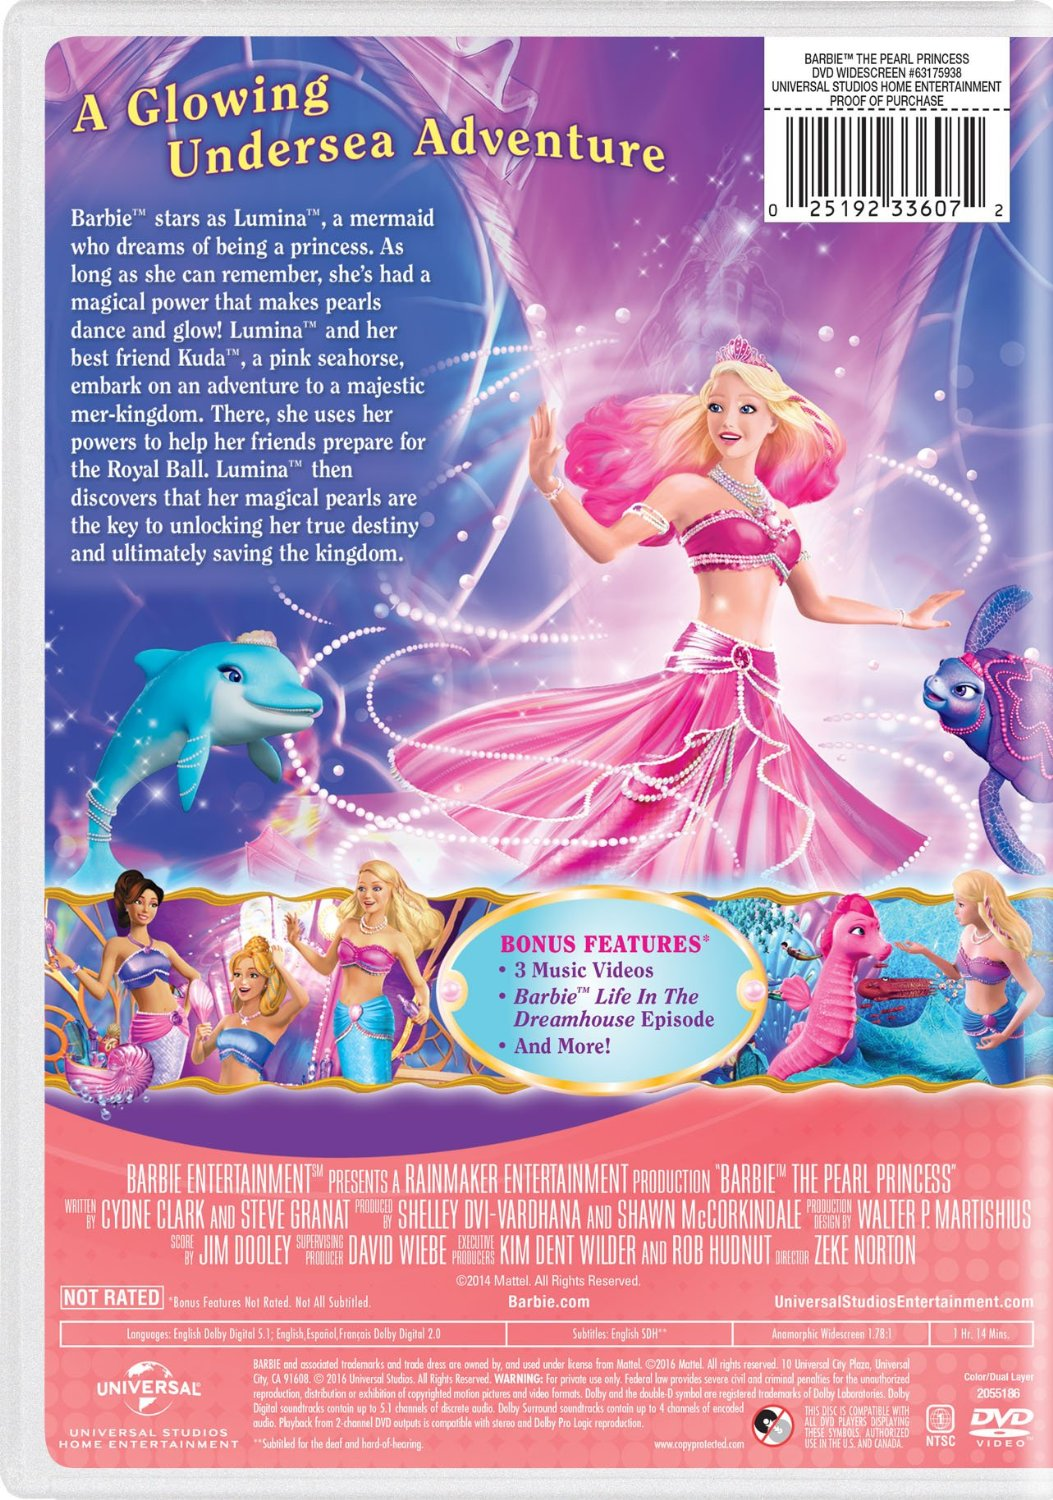 Barbie: The Pearl Princess 2016 DVD with New Artwork